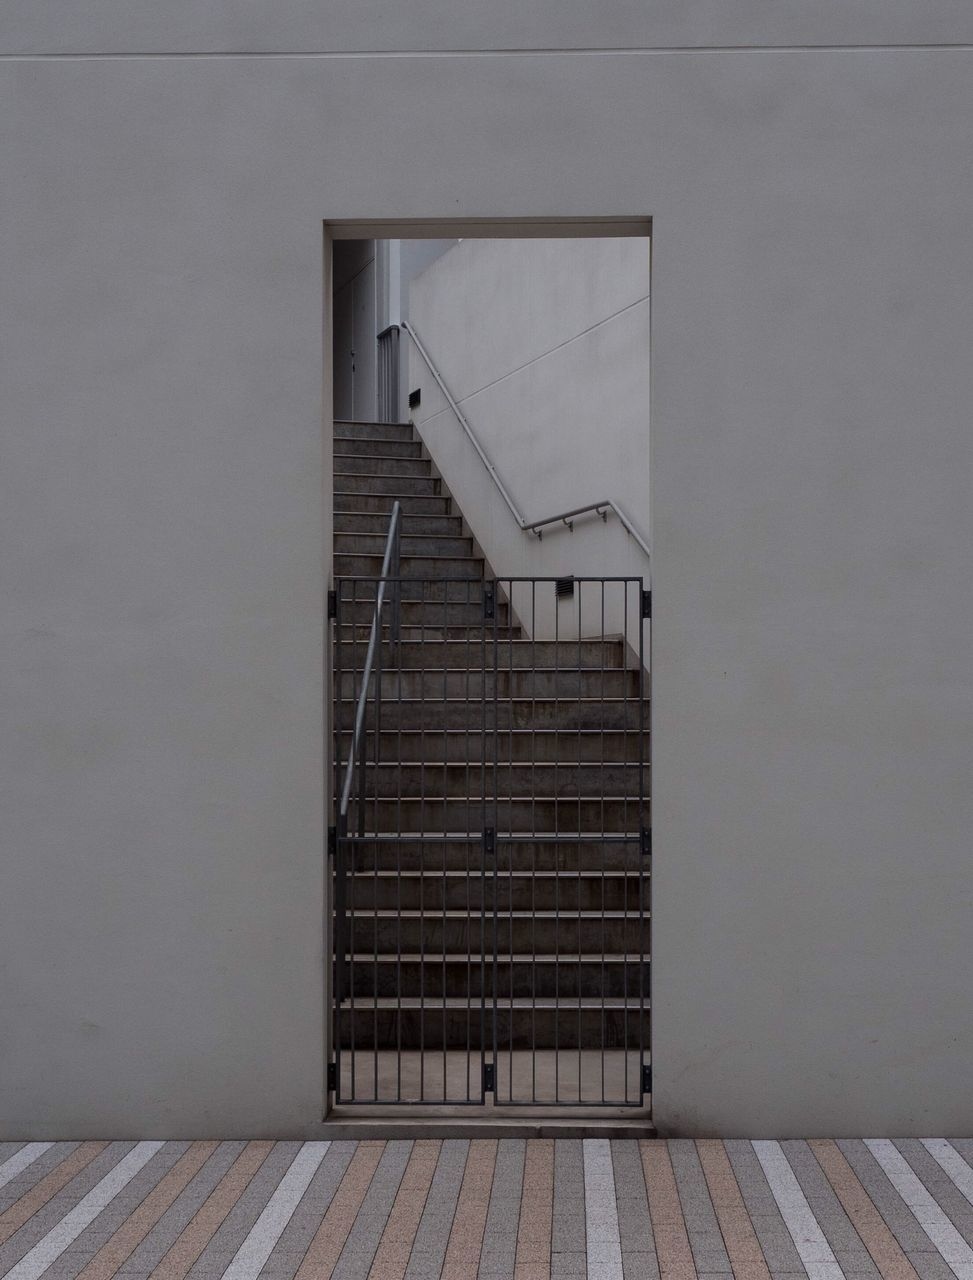 steps and staircases, steps, staircase, railing, built structure, architecture, indoors, no people, day, hand rail